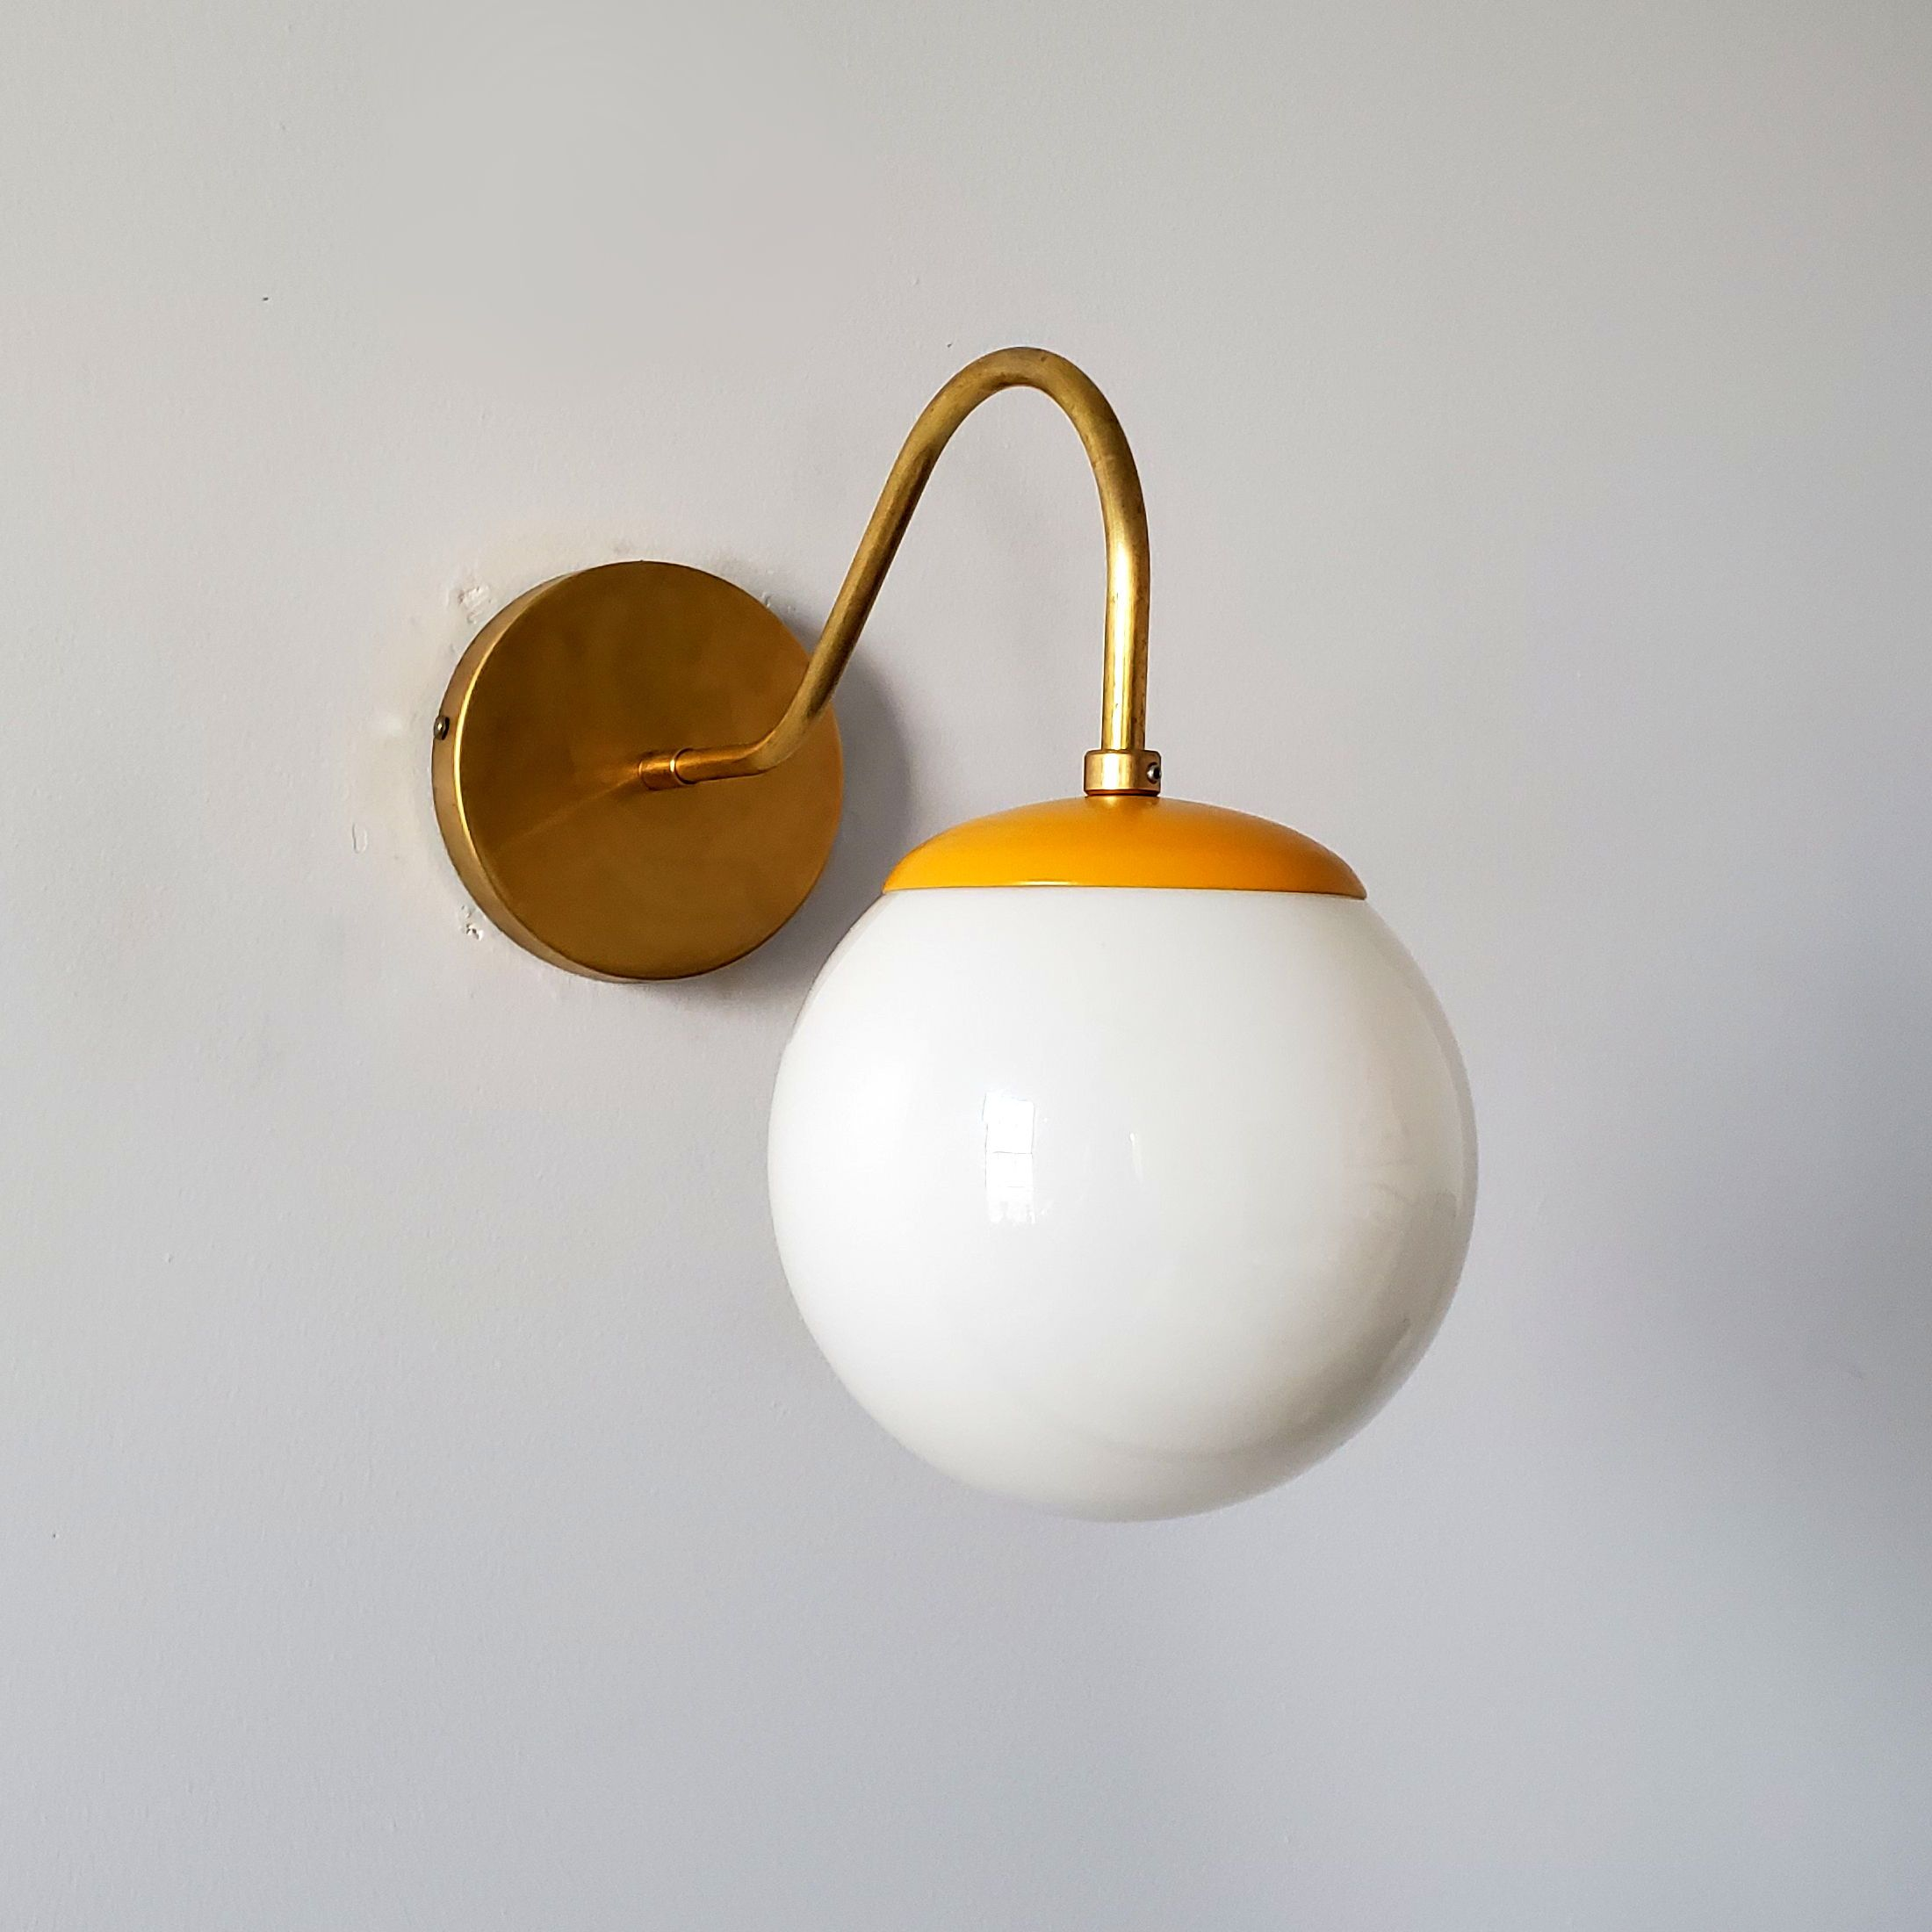 Mustard Brass Mid Century Modern Inspired Wall Sconce With A